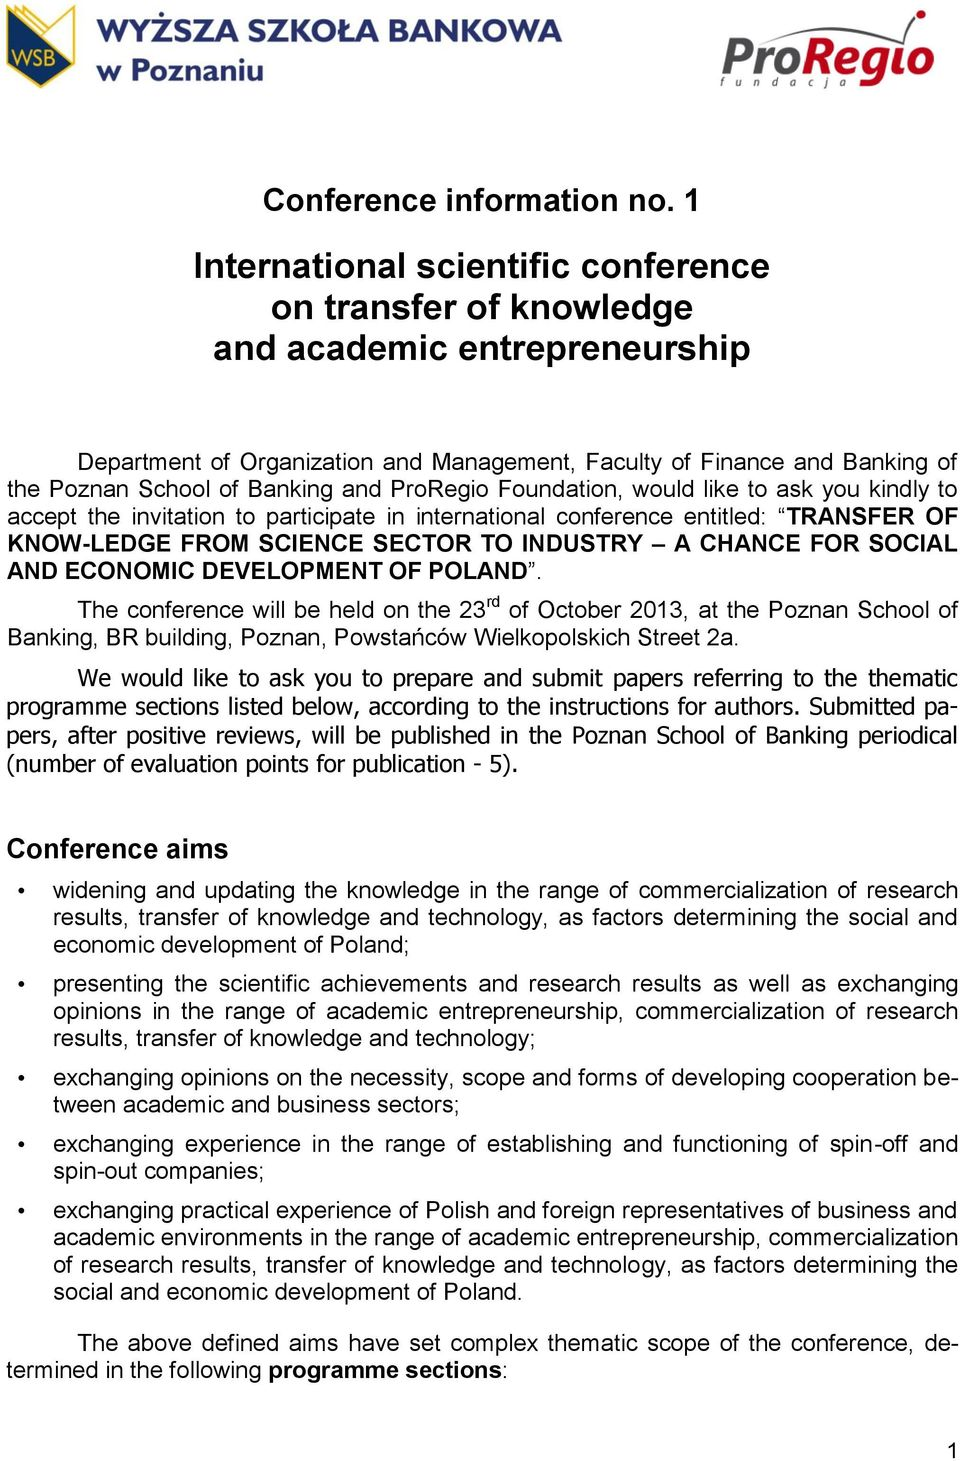 and ProRegio Foundation, would like to ask you kindly to accept the invitation to participate in international conference entitled: TRANSFER OF KNOW-LEDGE FROM SCIENCE SECTOR TO INDUSTRY A CHANCE FOR